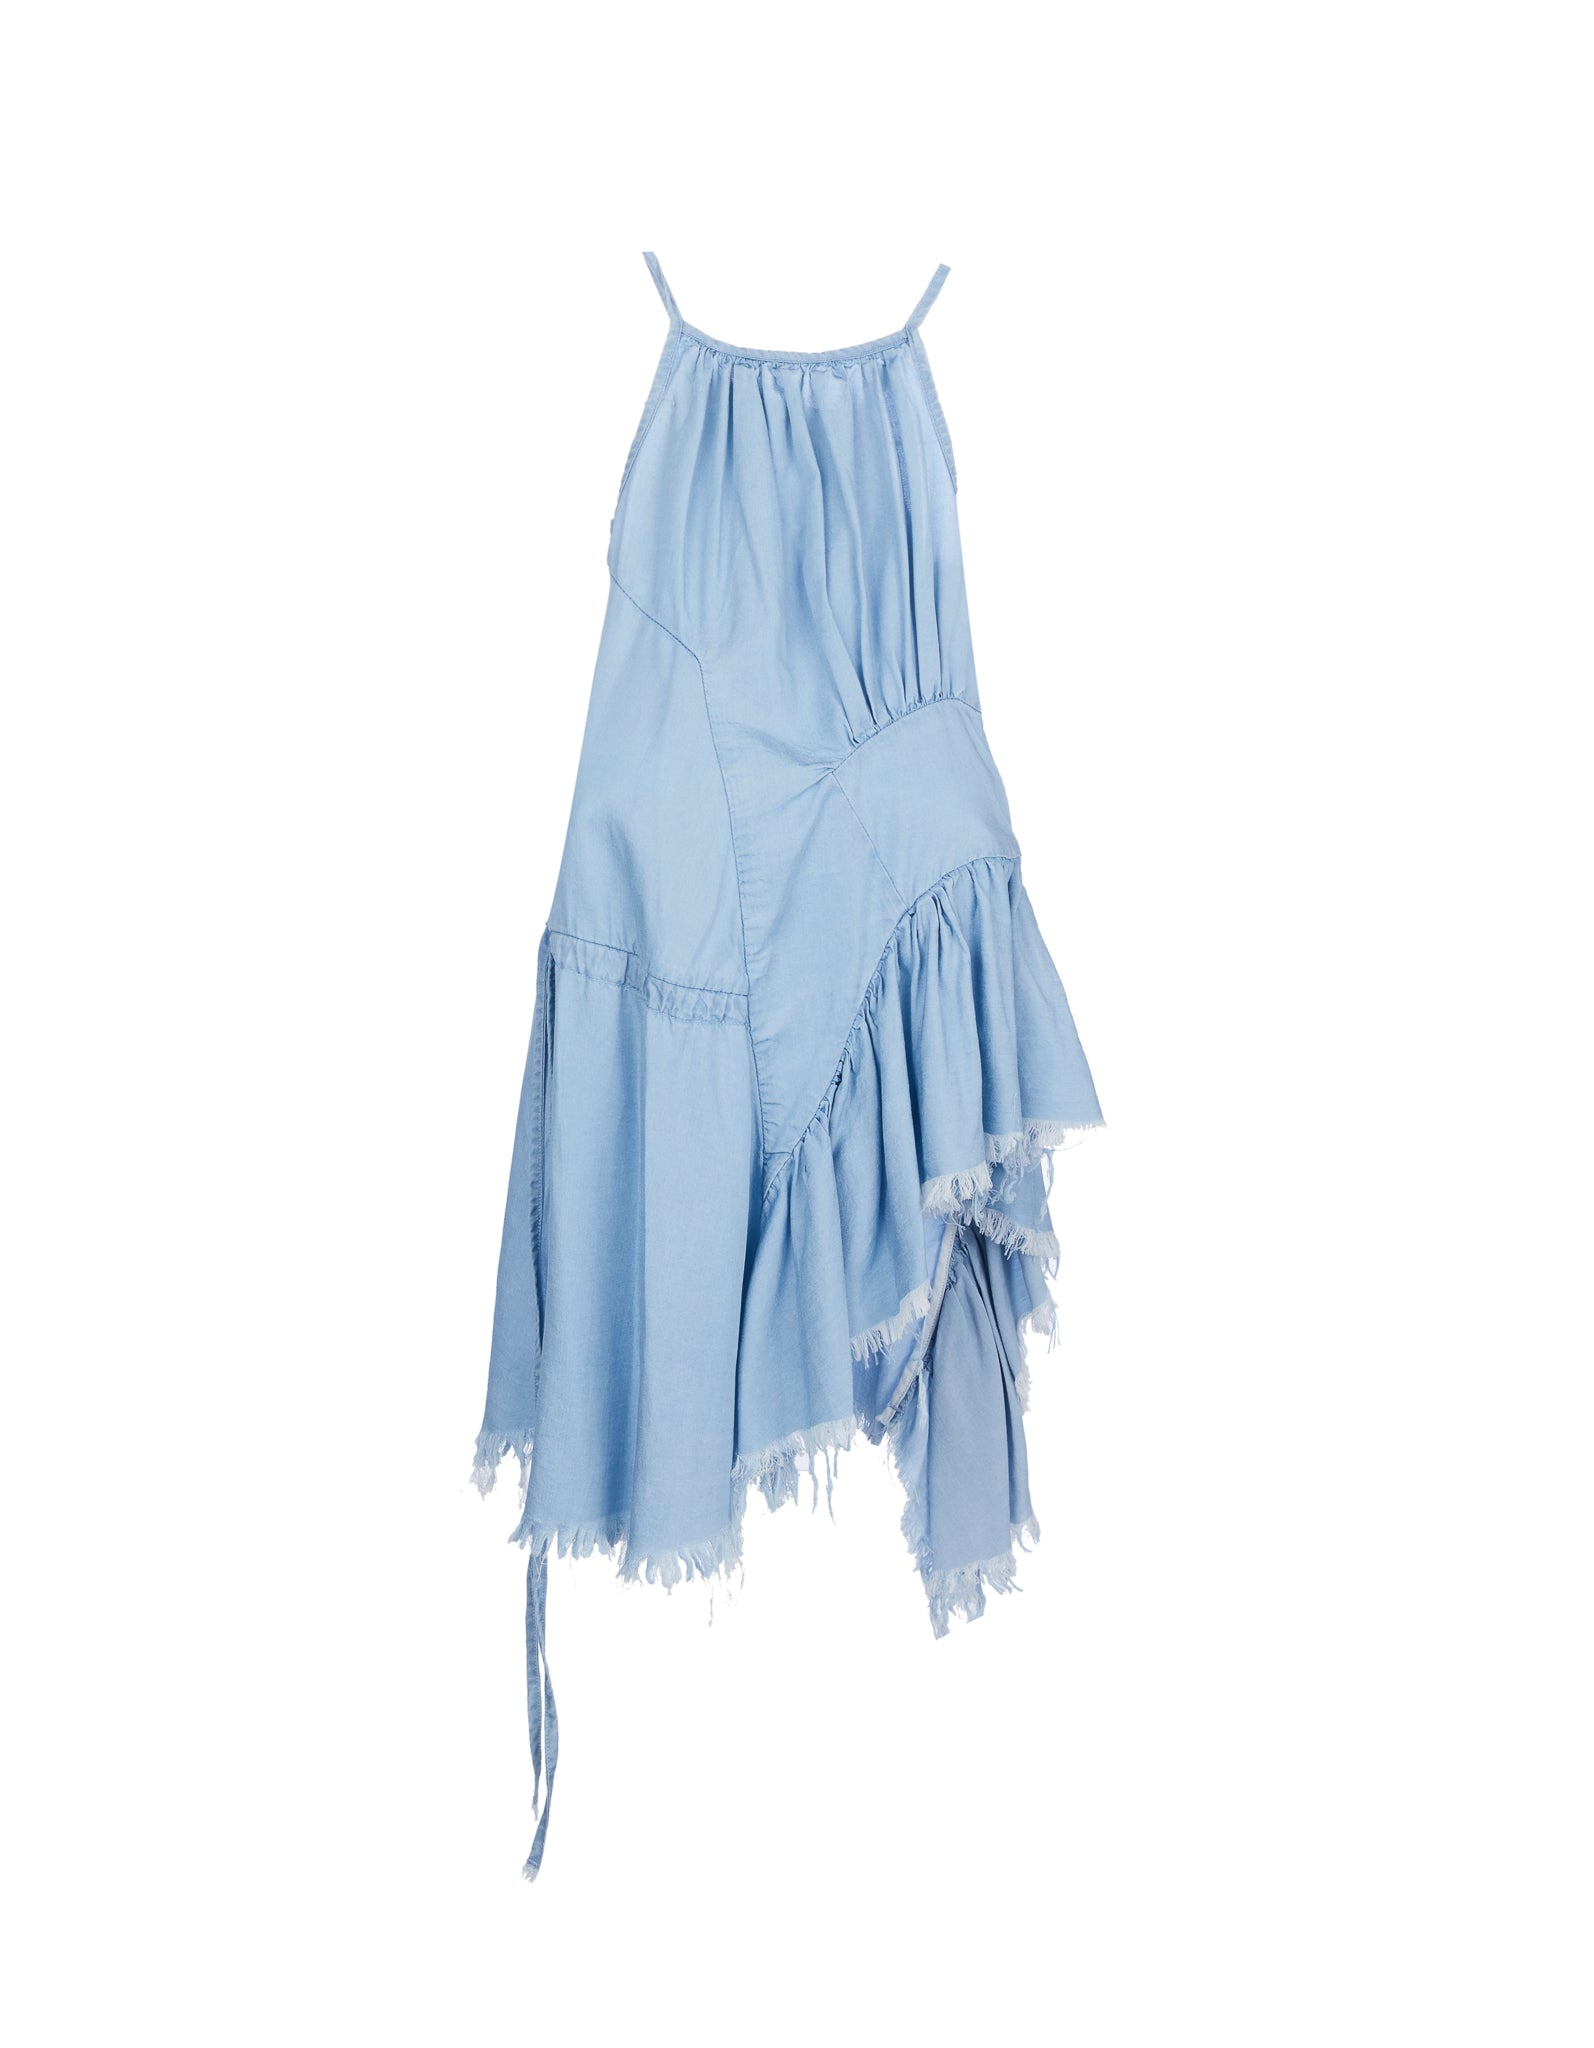 M'A KIDS GATHERED DRESS IN BABY BLUE